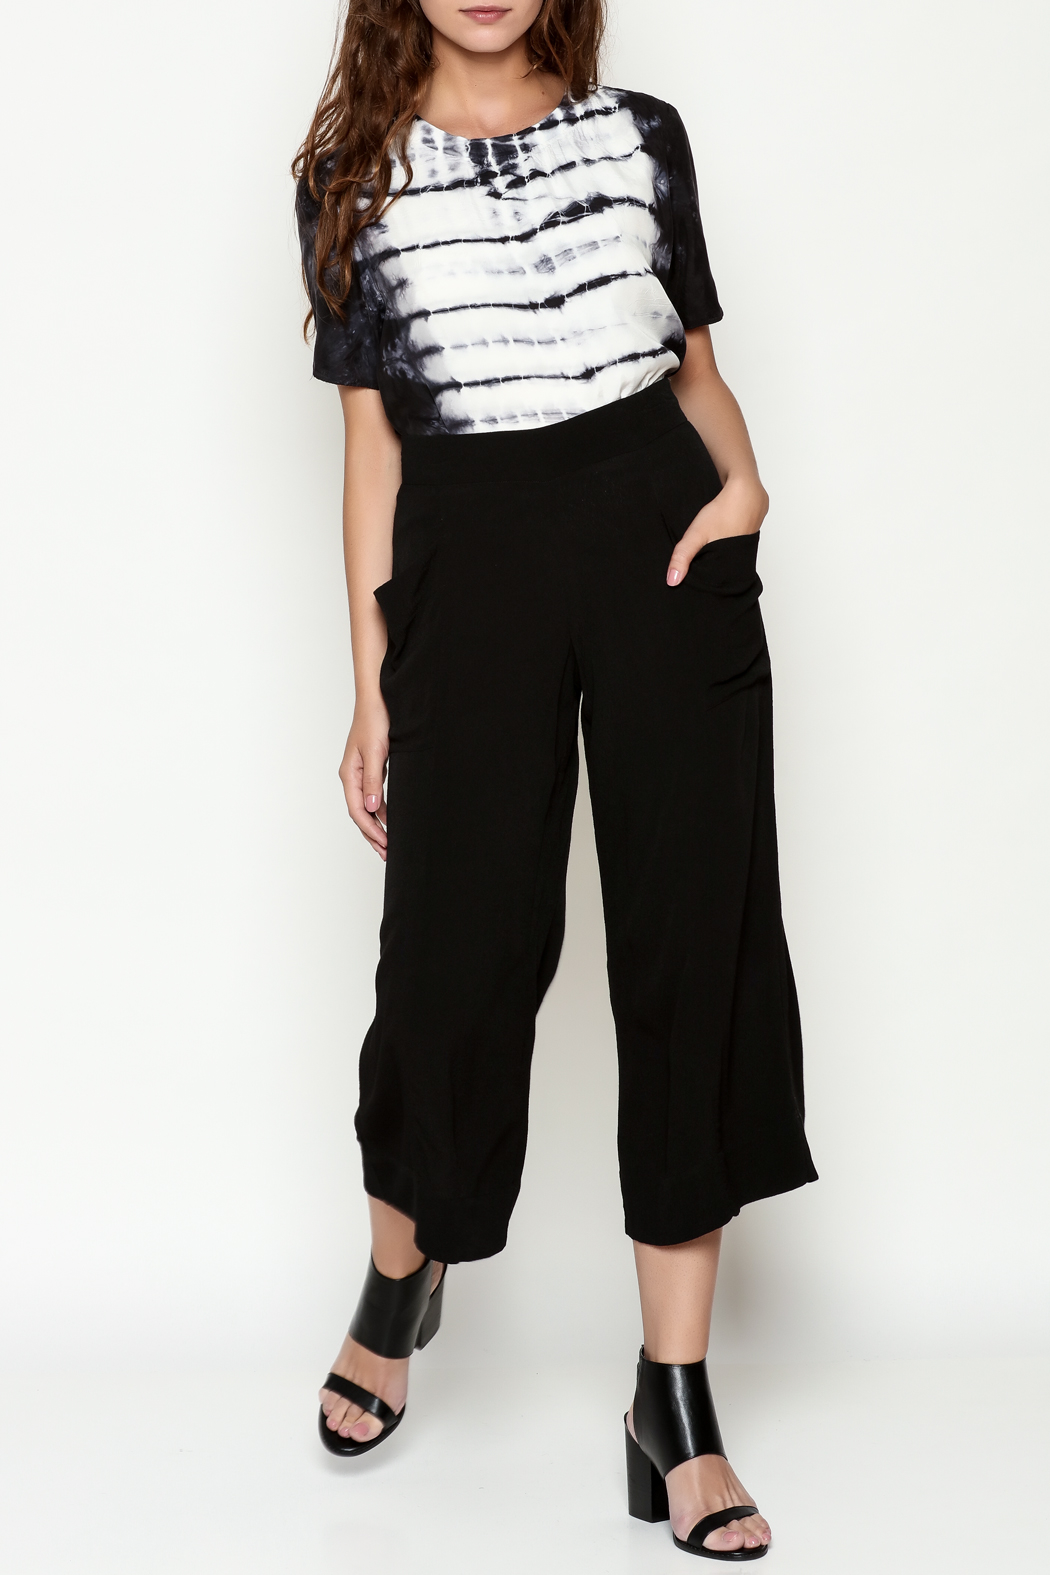 Cousin Earl Black Palazzo Pants - Side Cropped Image